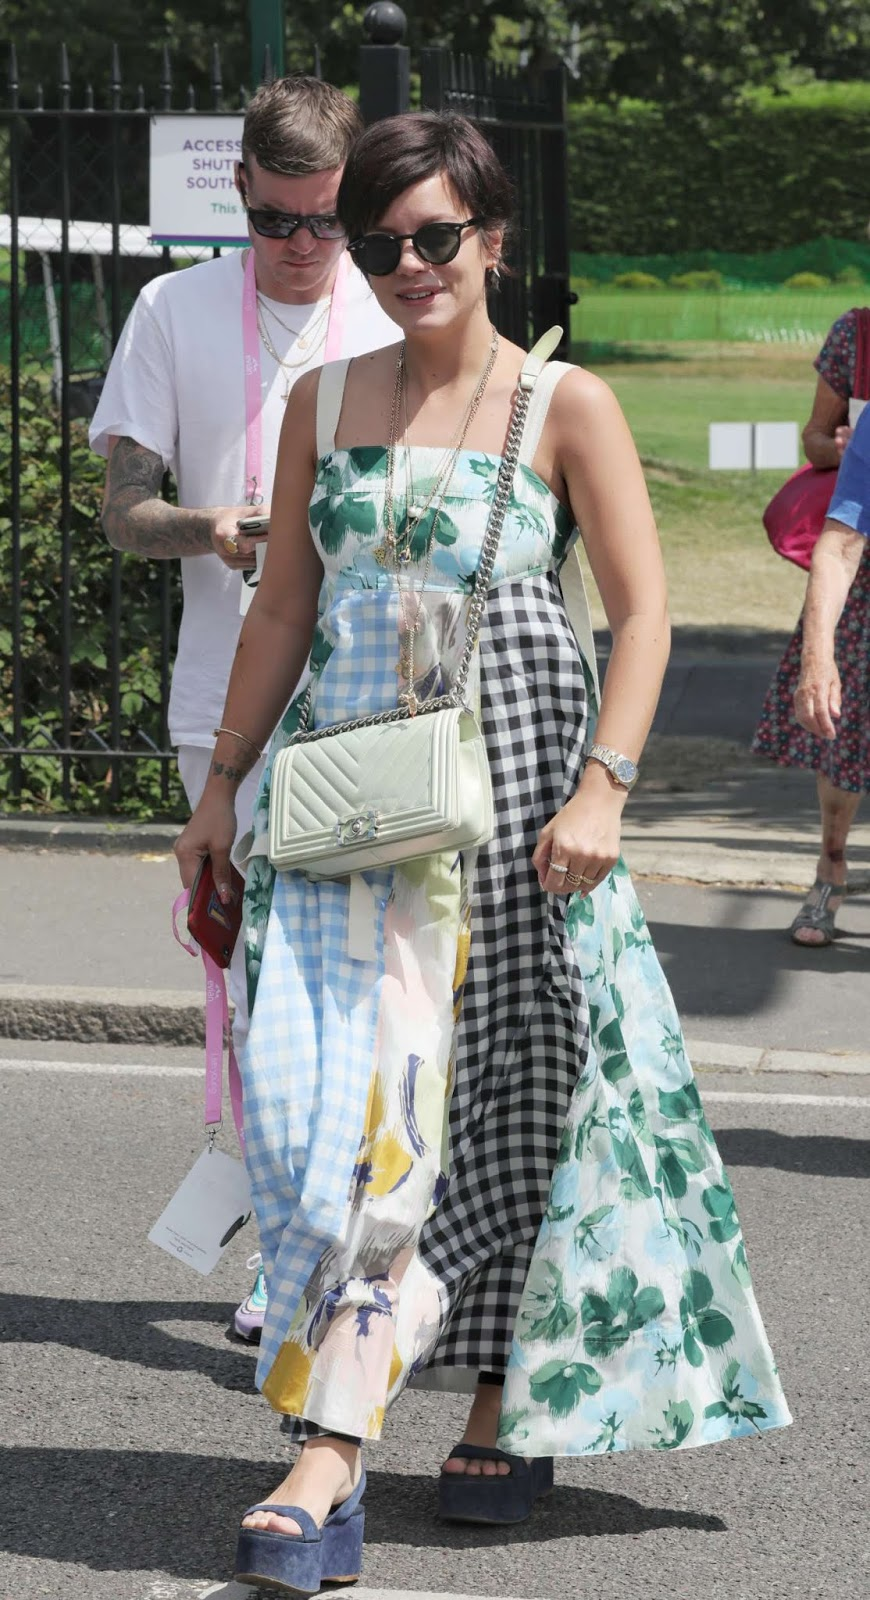 Lily Allen was all smiles as she enjoyed a day out at Wimbledon